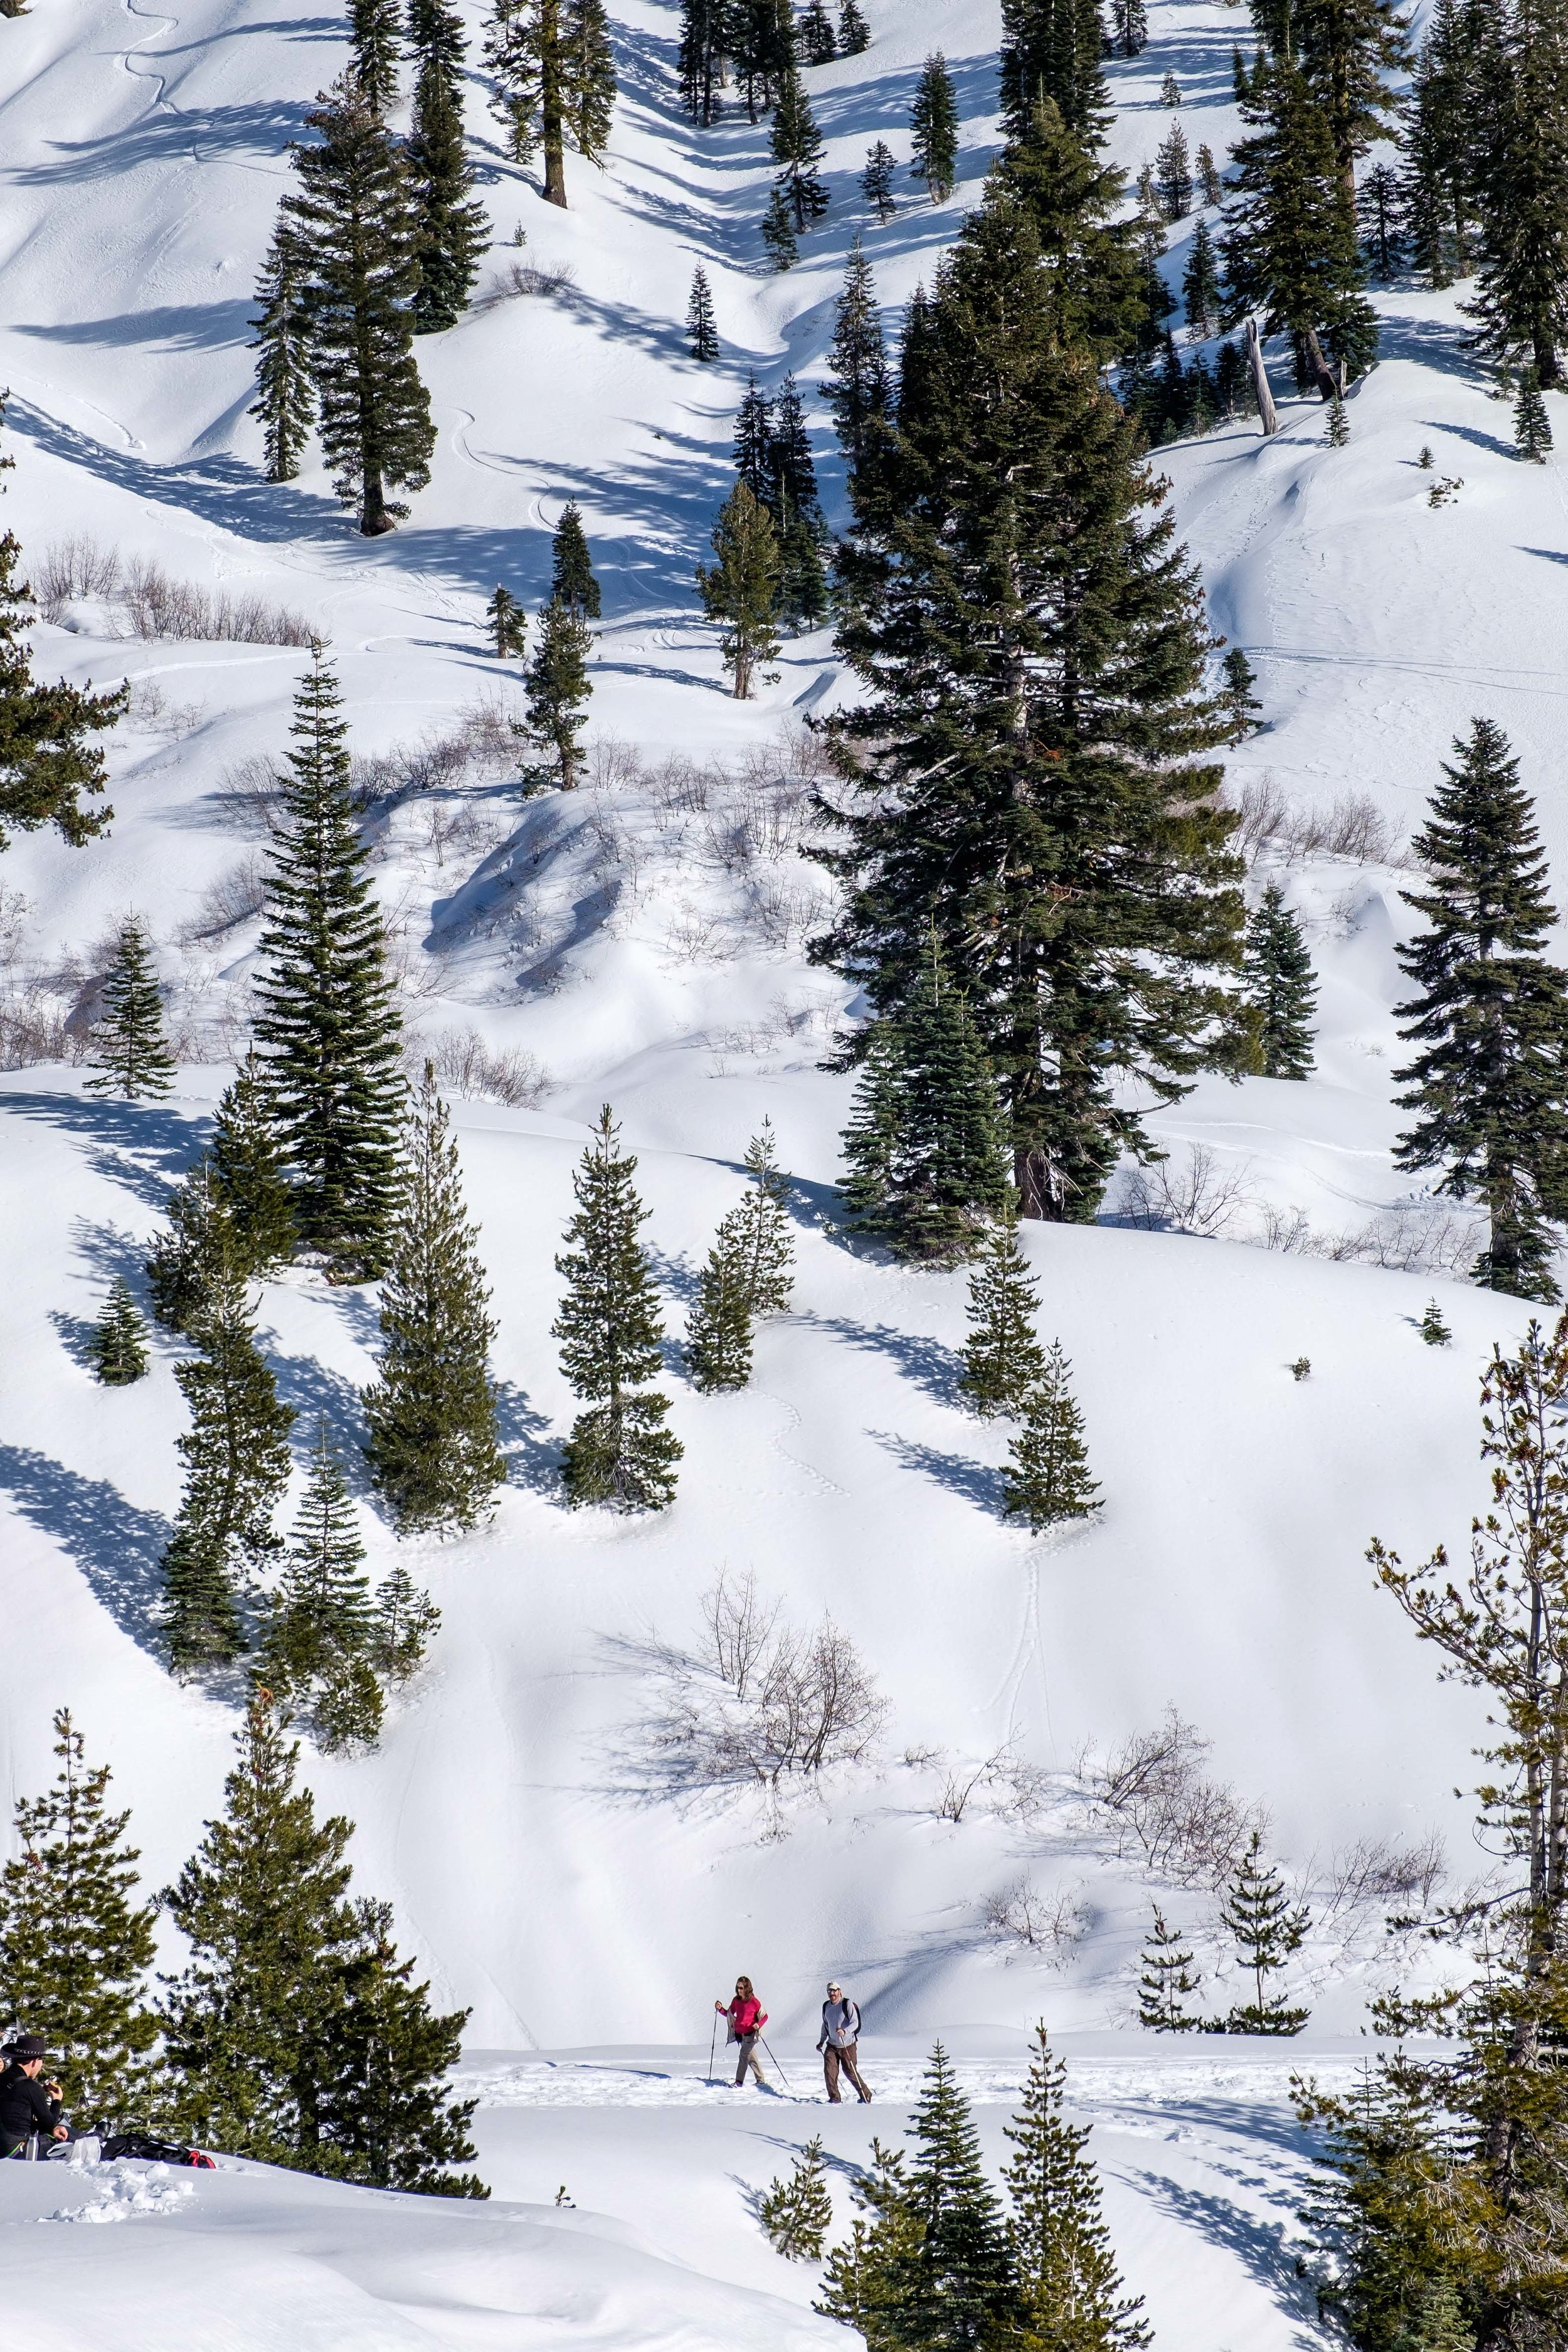 Hiking through backcountry is wonderful way to explore a snow-covered Lassen National Park!